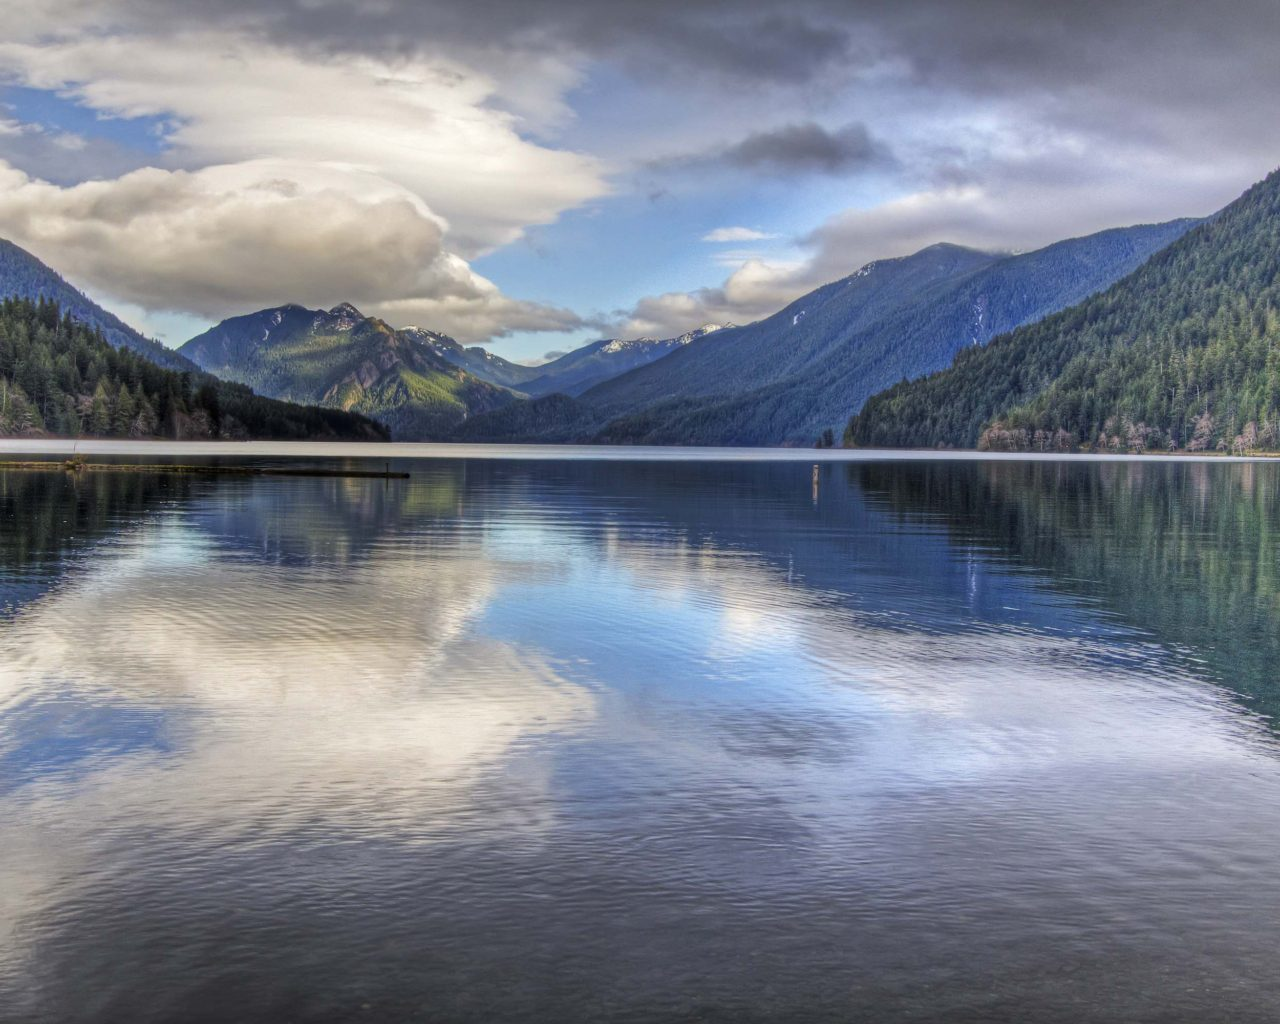 Wallpaper For Iphone 4 Lock Screen Lake Crescent Located In Northwest Washington Wallpaper